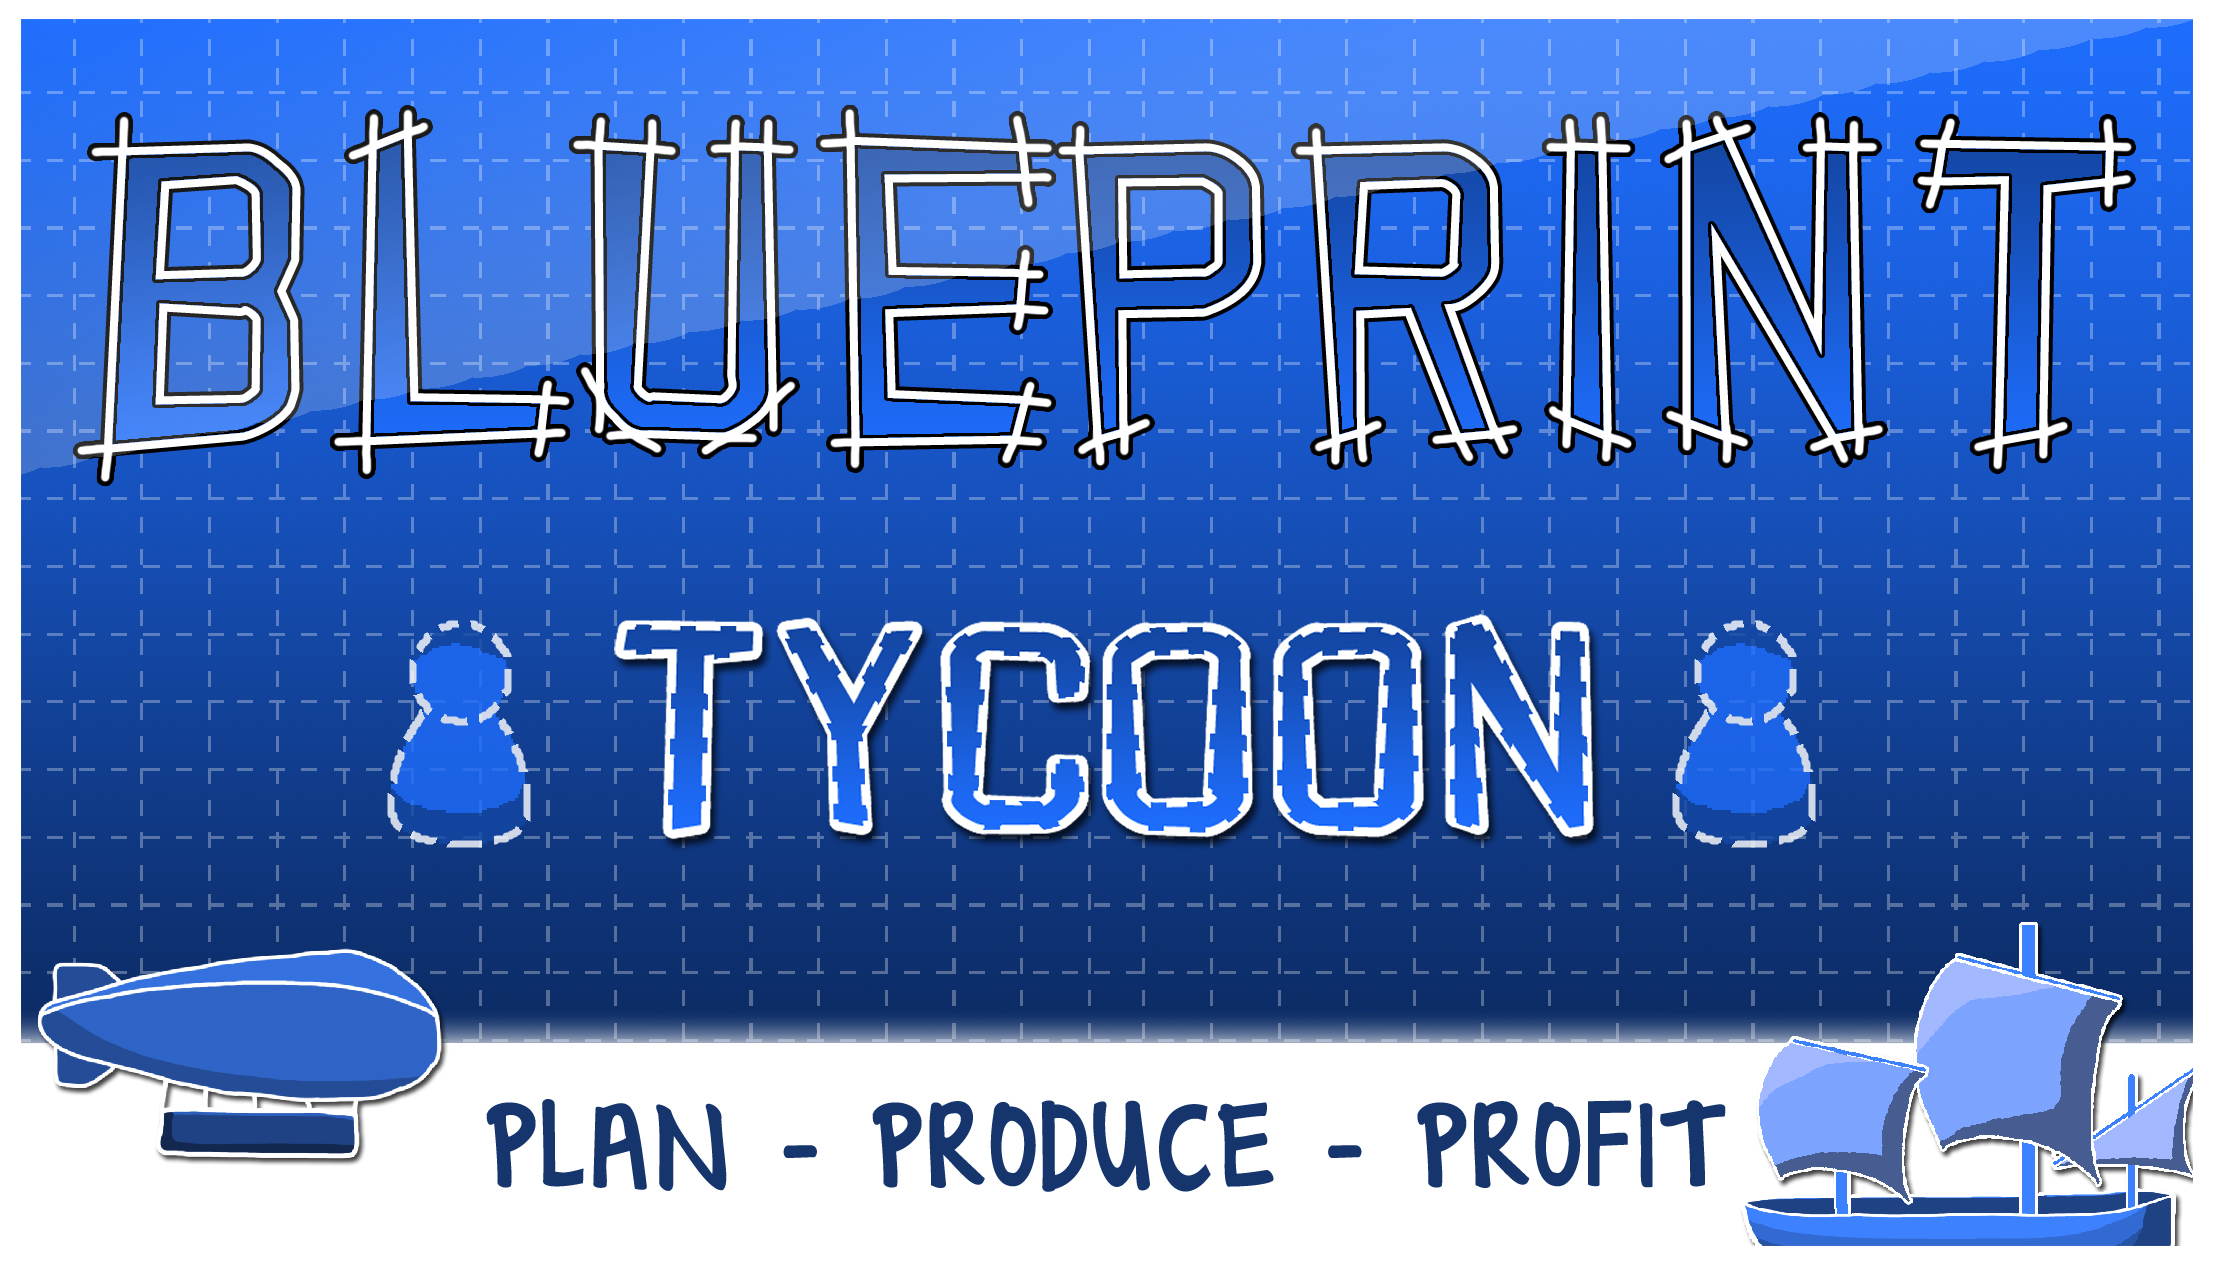 Blueprint tycoon plan produce profit in blueprint tycoon you are tasked with running a settlement by gathering raw materials and crafting them into complex goods to be supplied to your malvernweather Gallery